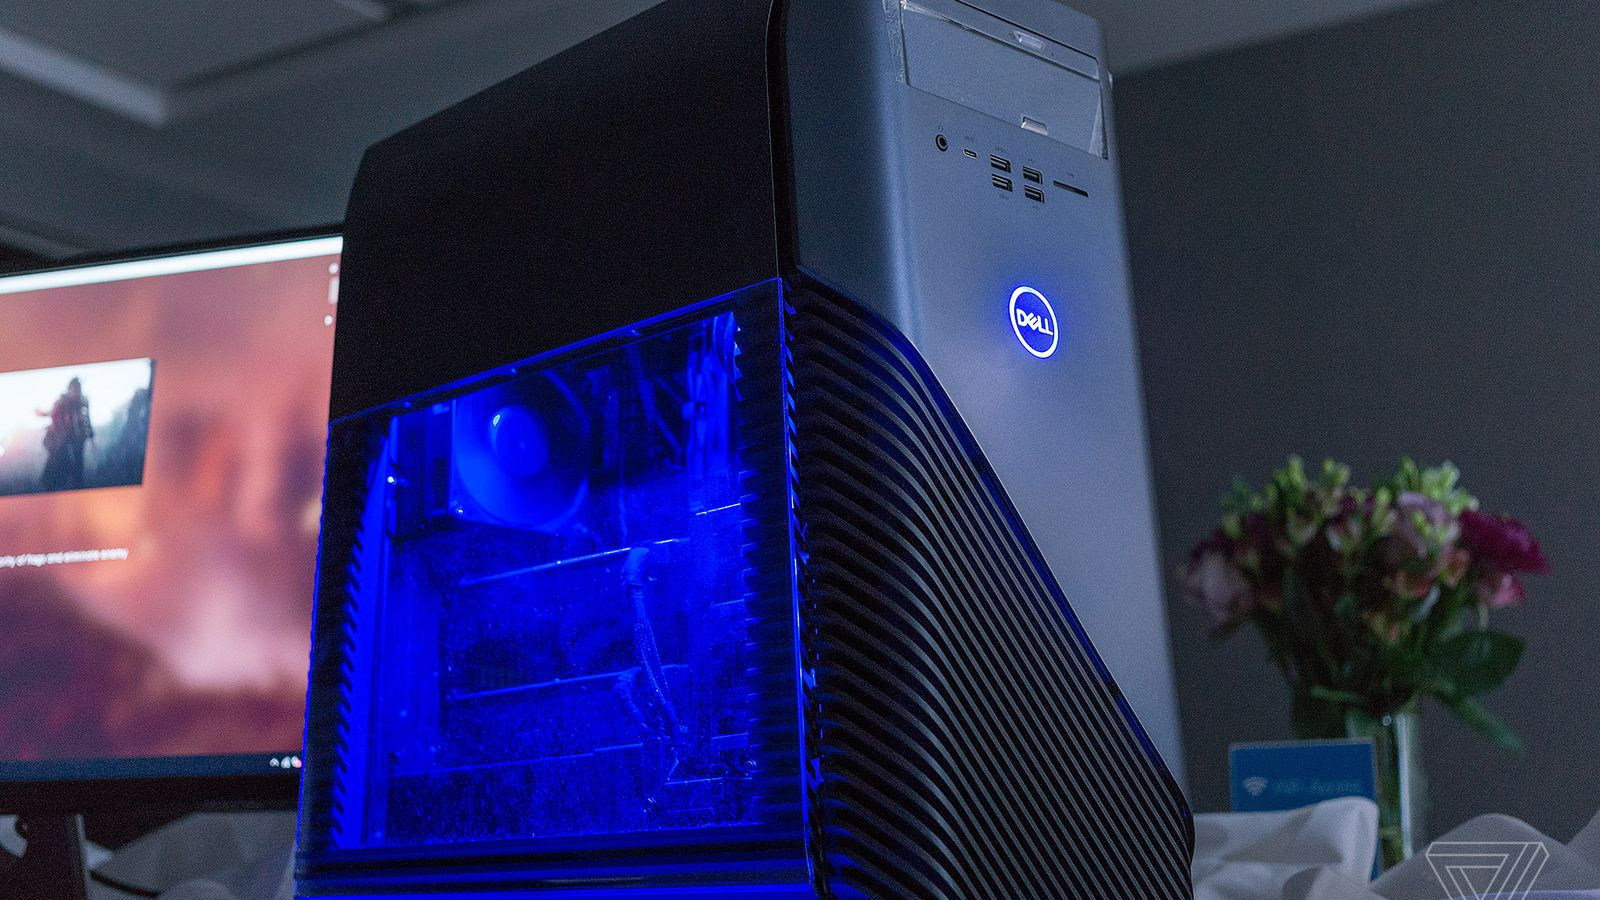 Dell's budget gaming PC won't be budget by the time you spec it out - The Verge